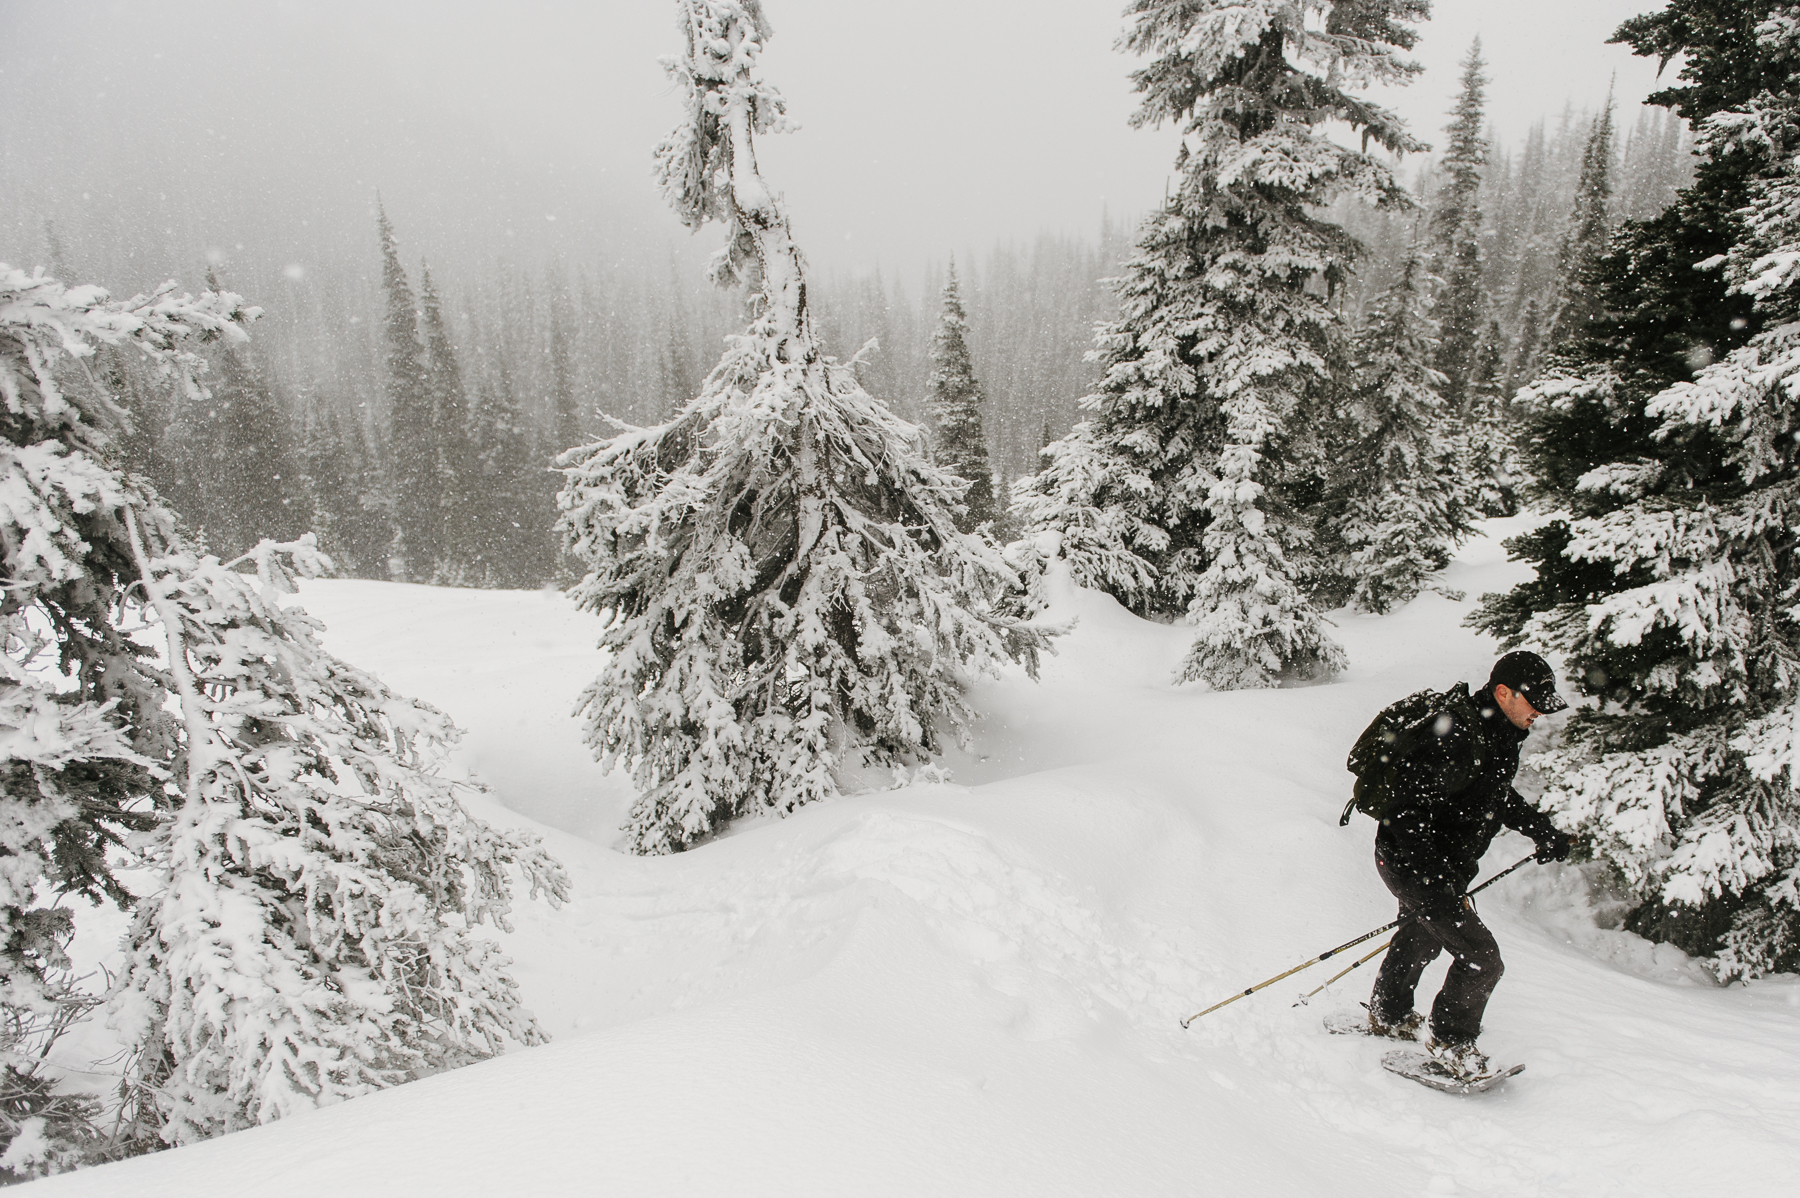 hurricane-ridge-snowshoeing-adventure-photographer-8